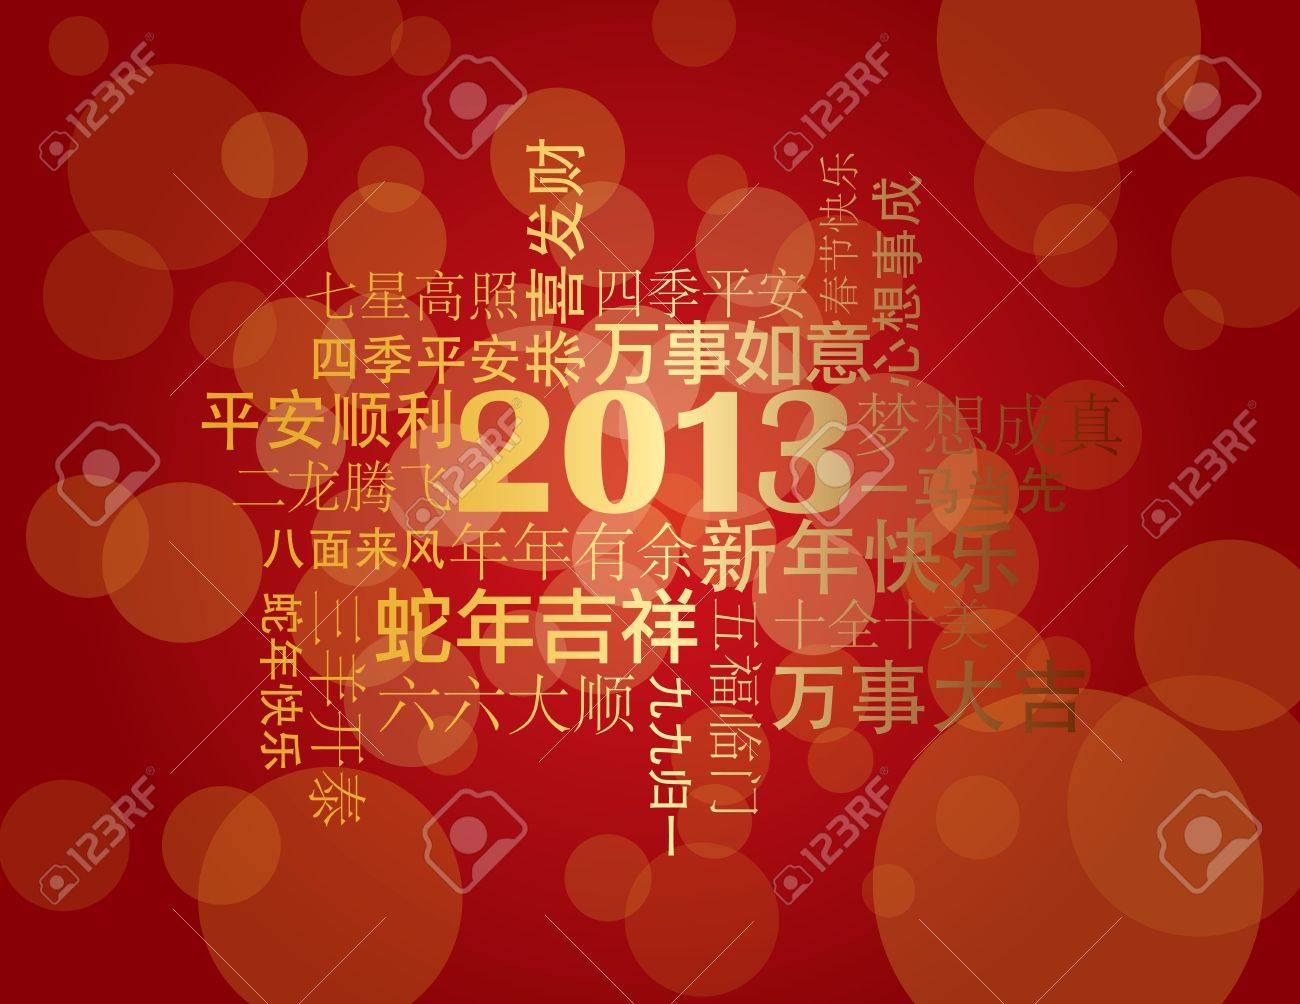 2013 chinese lunar new year greetings text wishing health good 2013 chinese lunar new year greetings text wishing health good fortune prosperity happiness in the year m4hsunfo